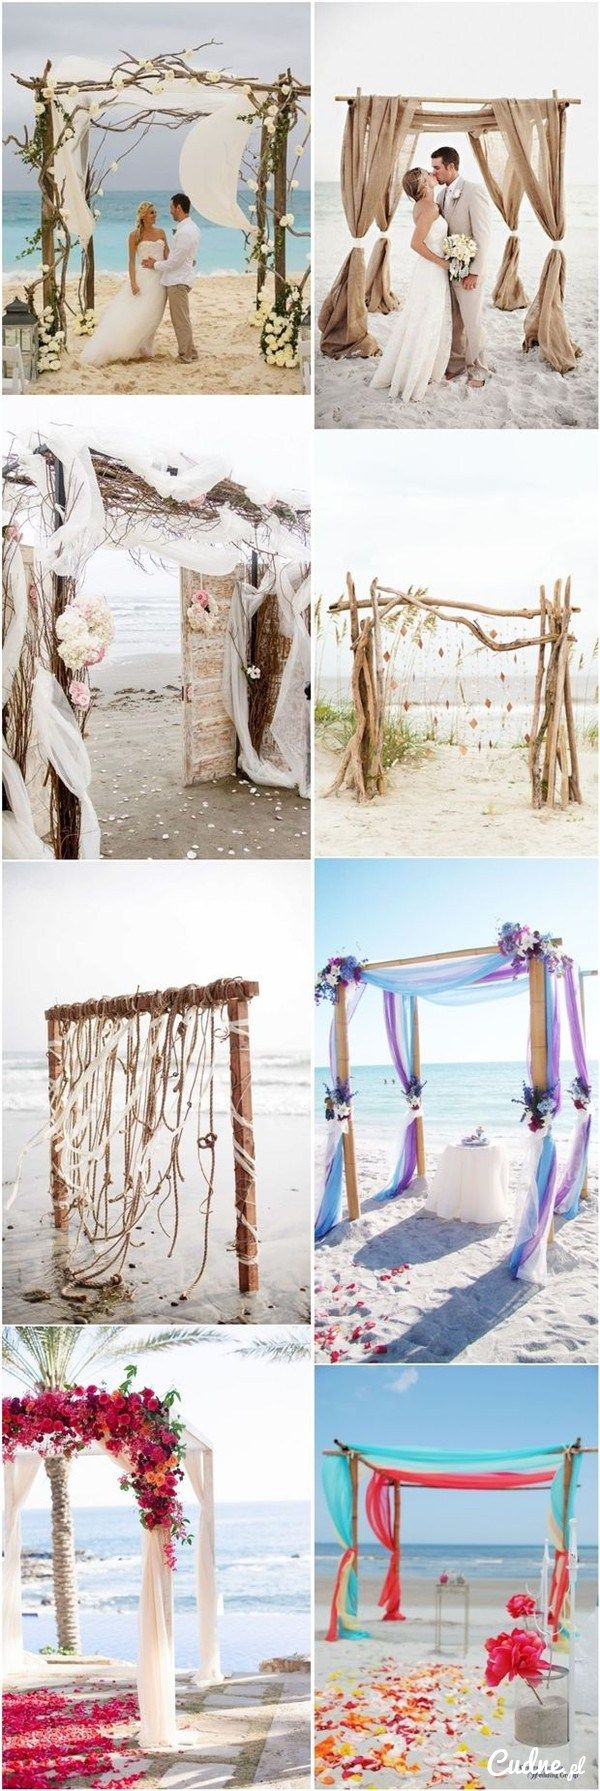 Wedding decoration ideas in kerala   best Hawaiian wedding images on Pinterest  Wedding ideas